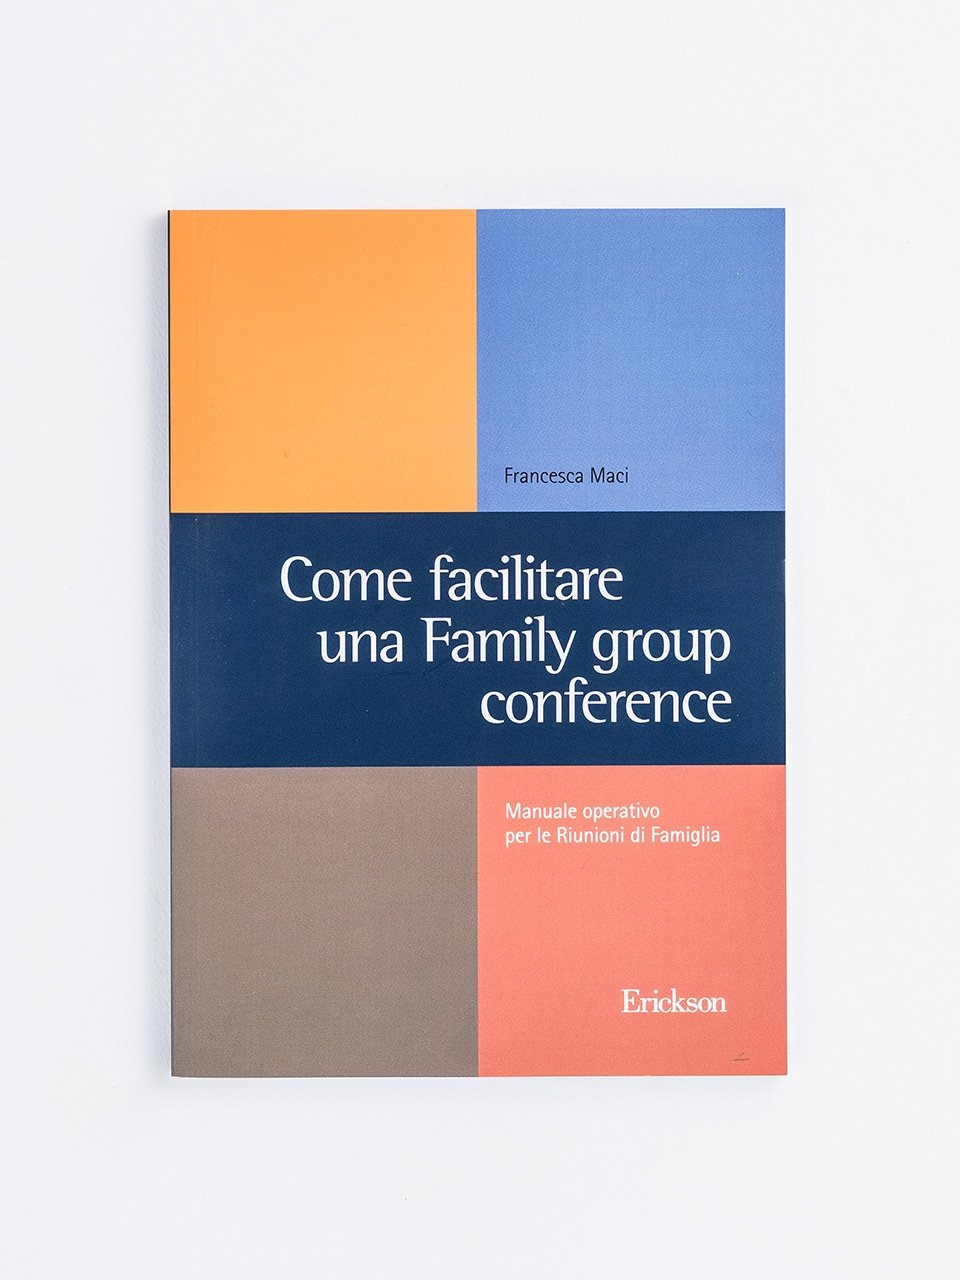 Come facilitare una Family group conference - Giochinsieme - Sequenze e relazioni - Strumenti - Erickson